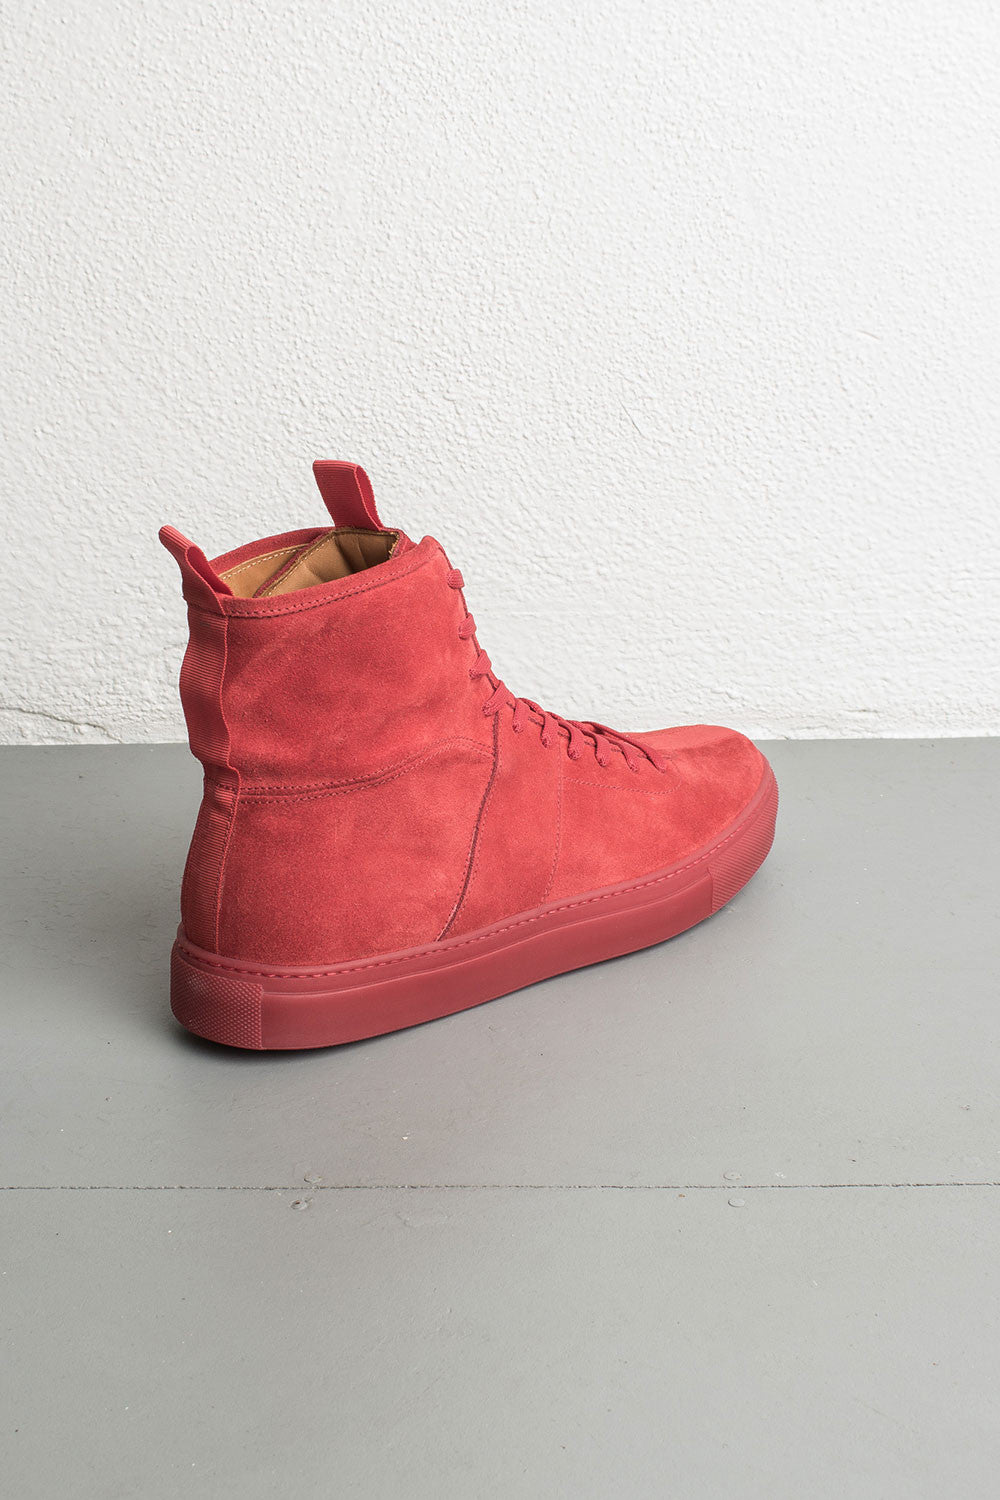 red high top sneakers by daniel patrick